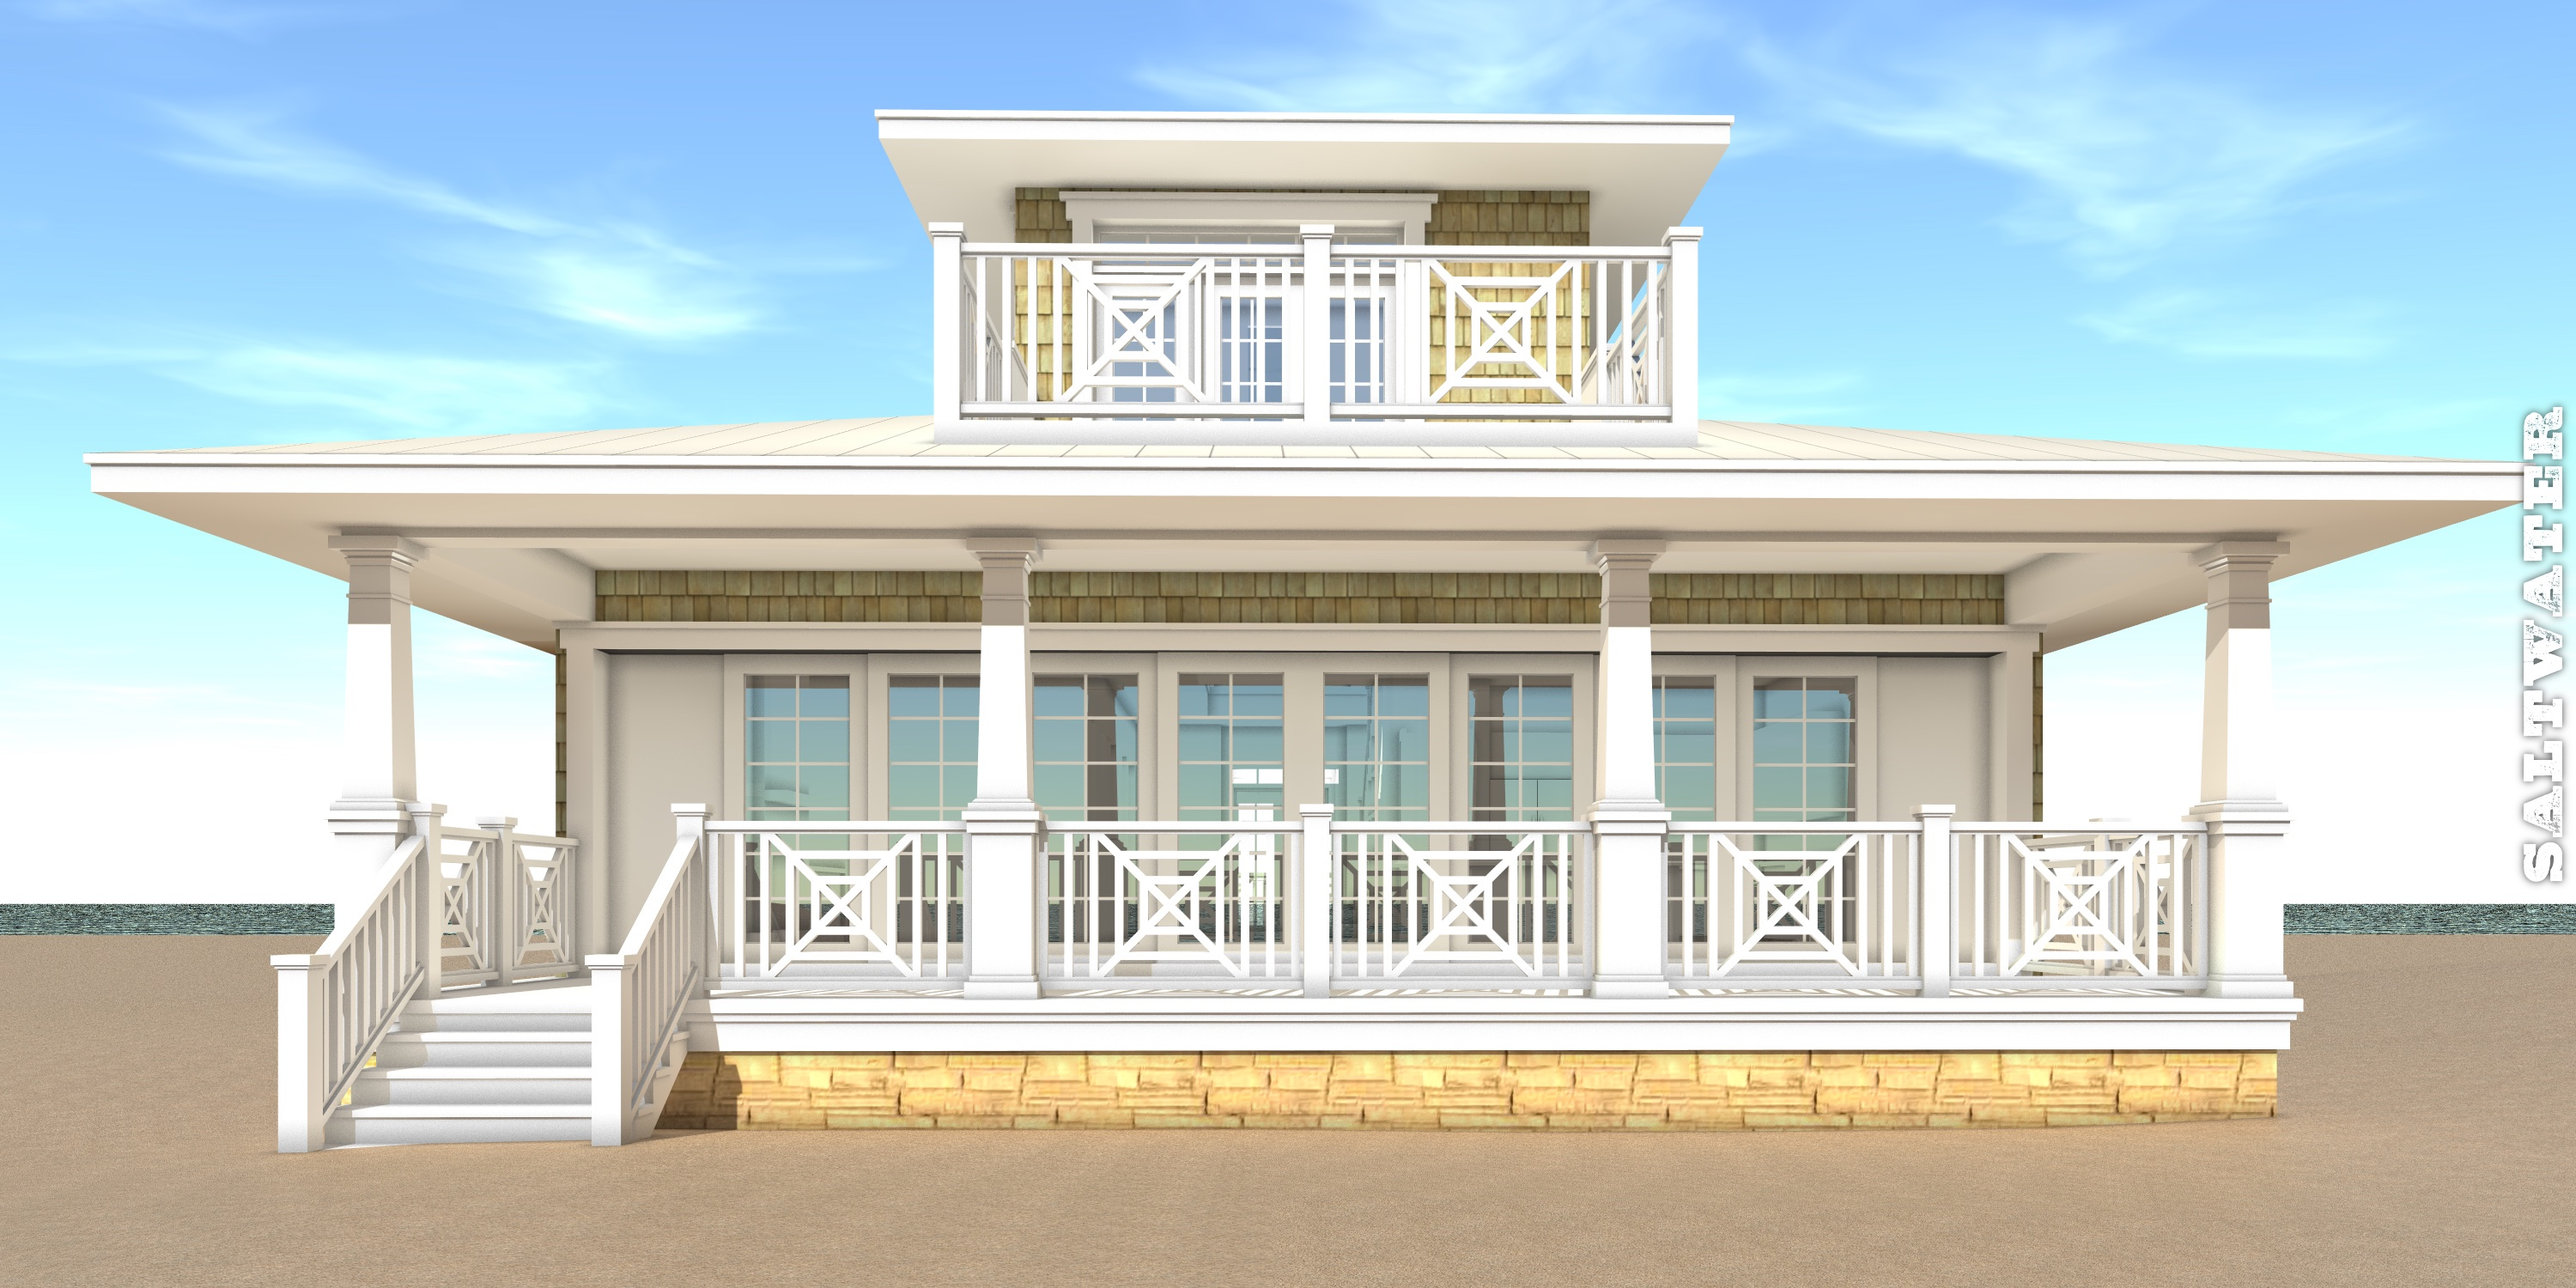 Simple building designs for Simple house structure design